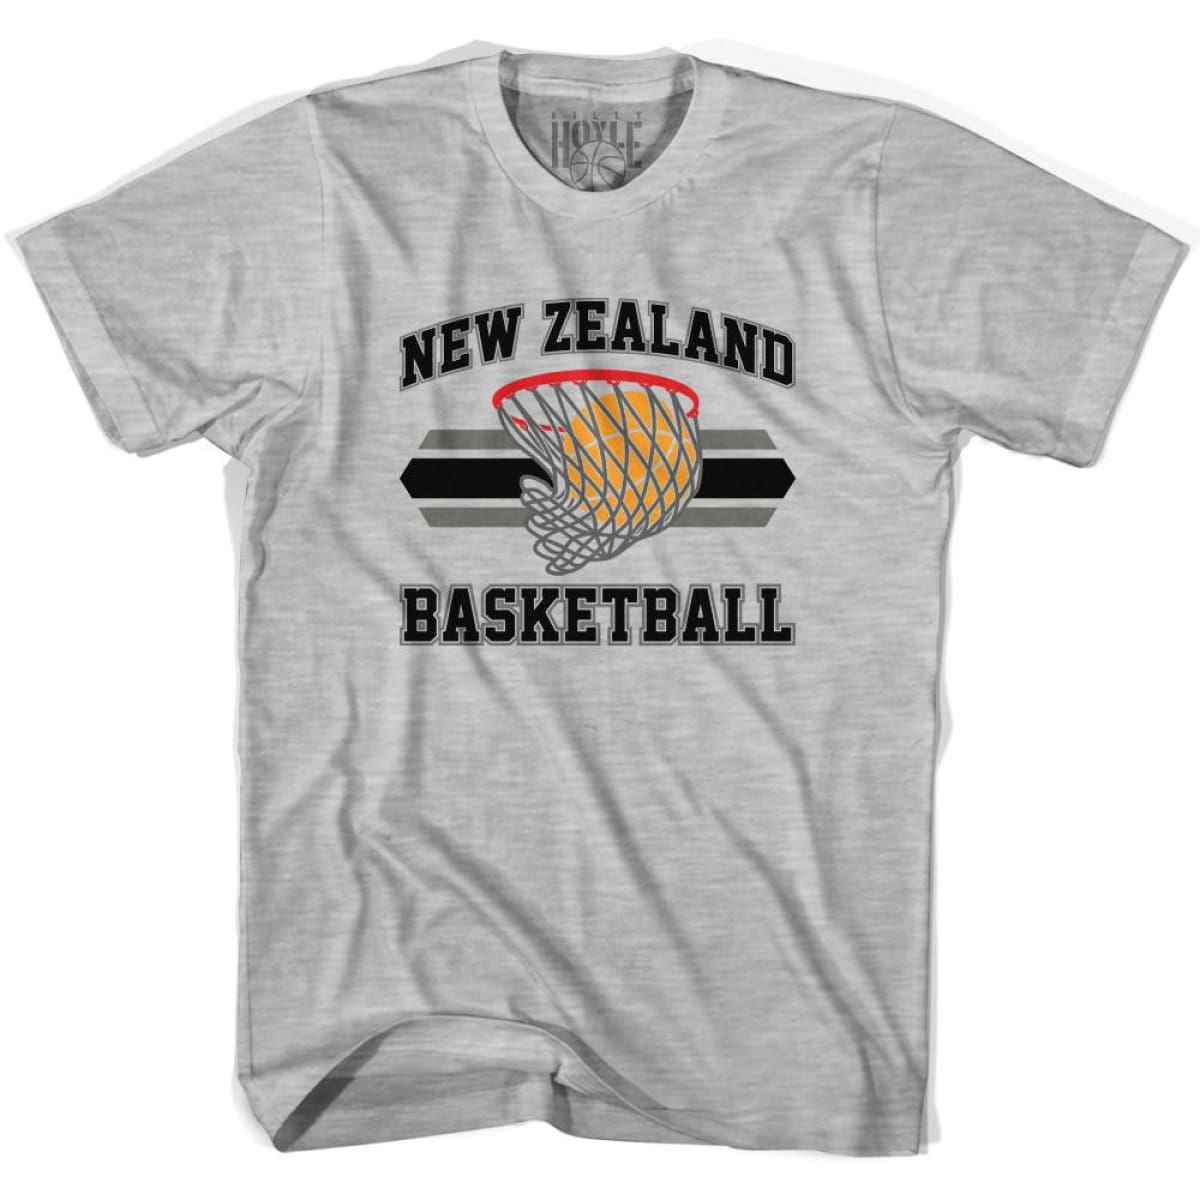 New Zealand 90s Basketball T-shirts - Grey Heather / Youth X-Small - Basketball T-shirt